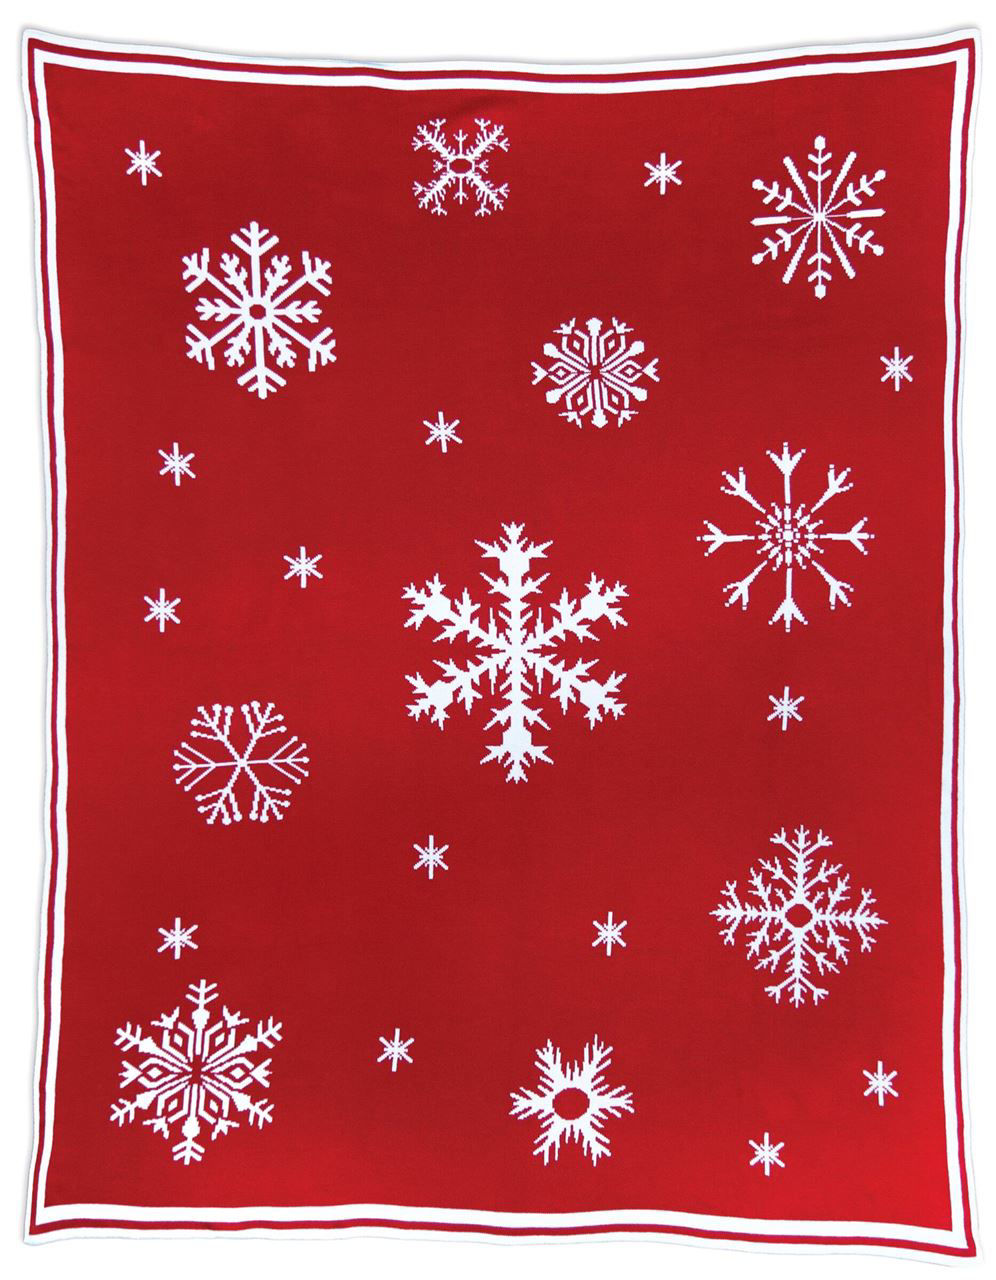 White Flakes Reversible Blanket by Chandler 4 Corners